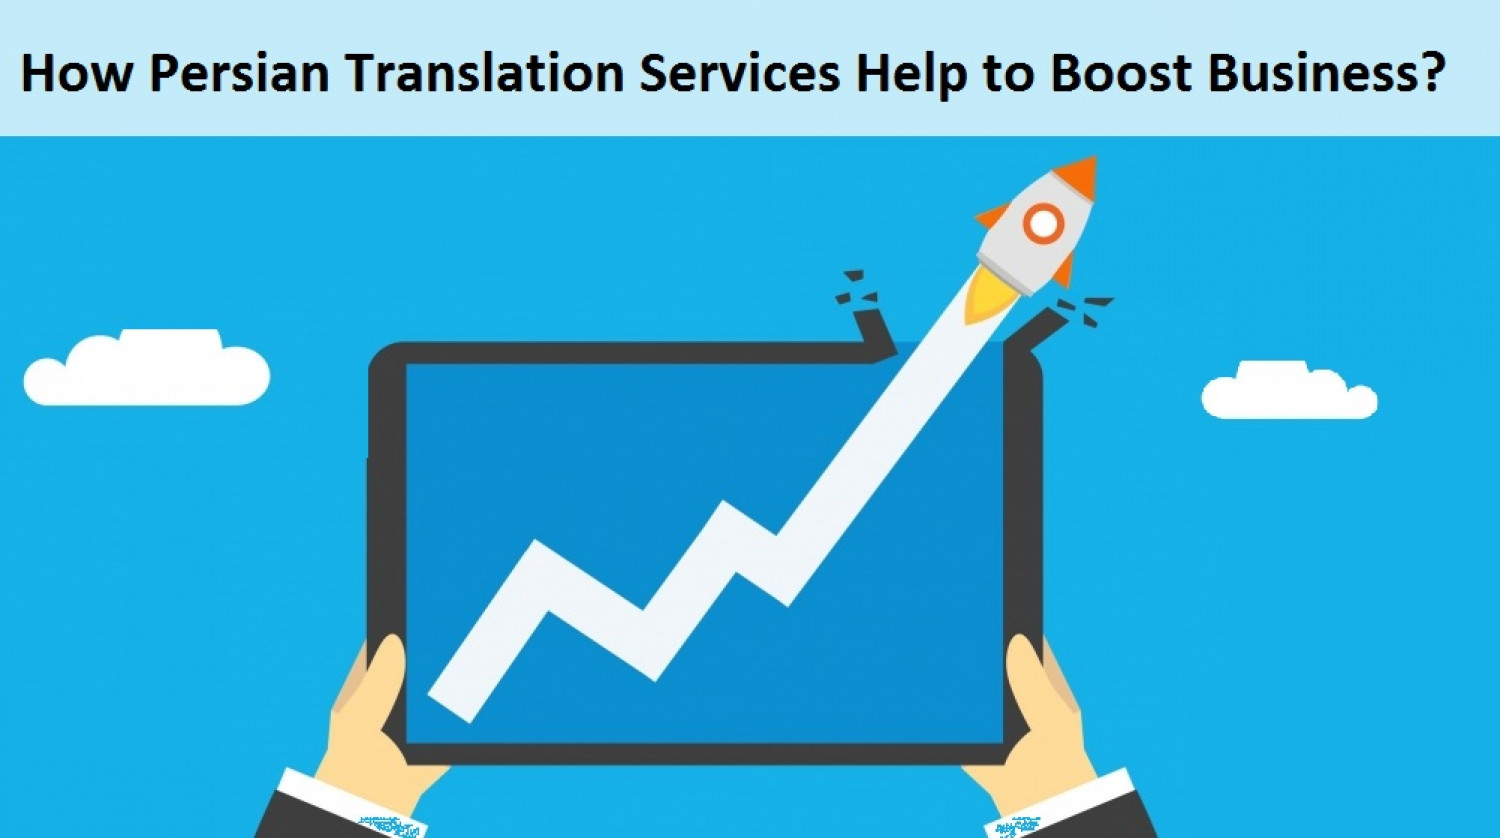 How Persian Translation Services Help to Boost Business? Infographic